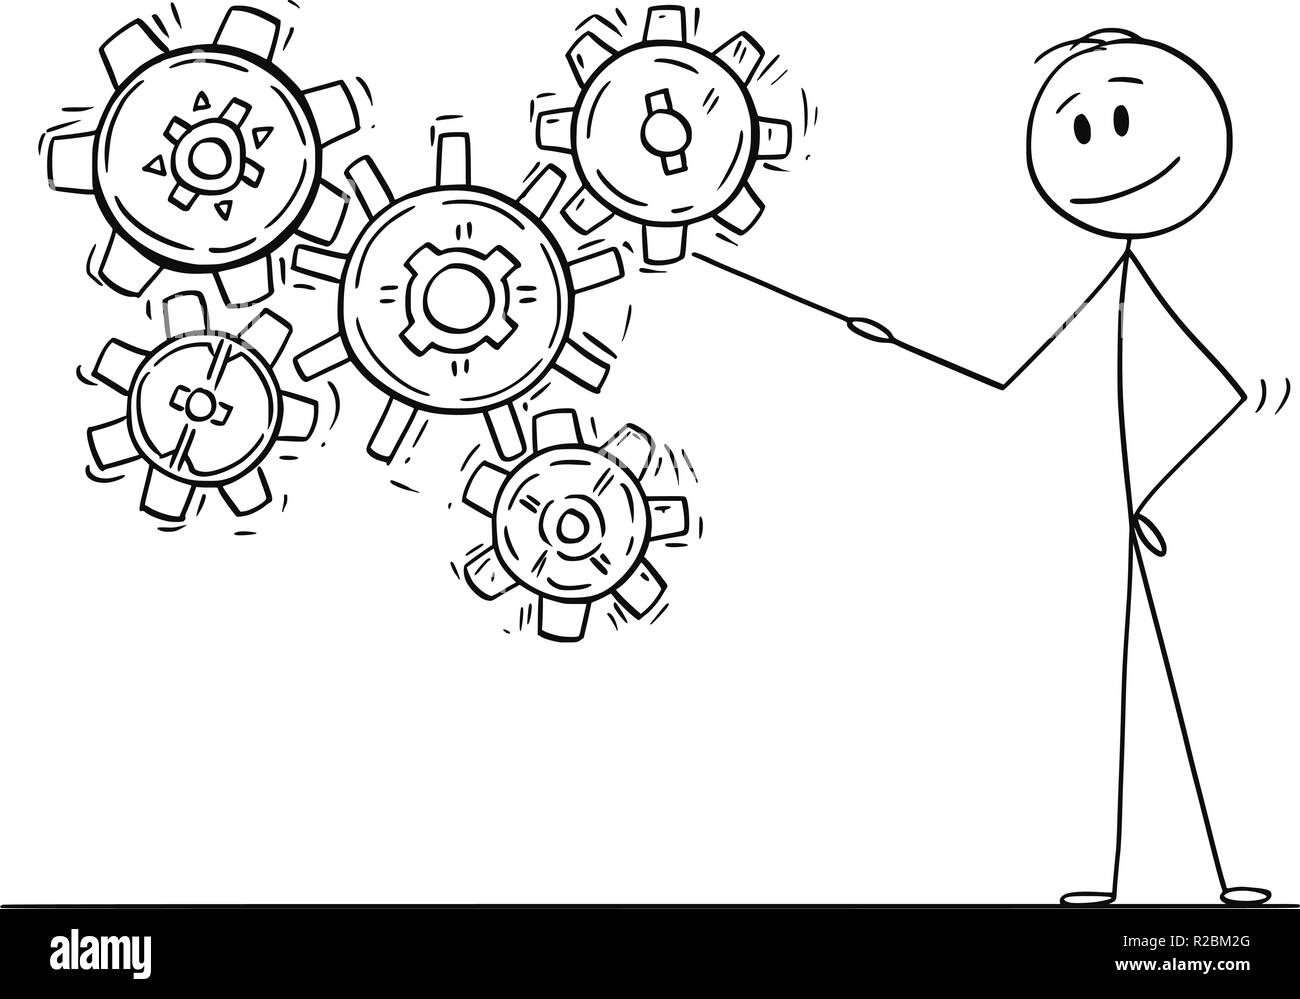 Cartoon of Man or Businessman Pointing at Working Cogwheels or Cog or Gear Wheels - Stock Image